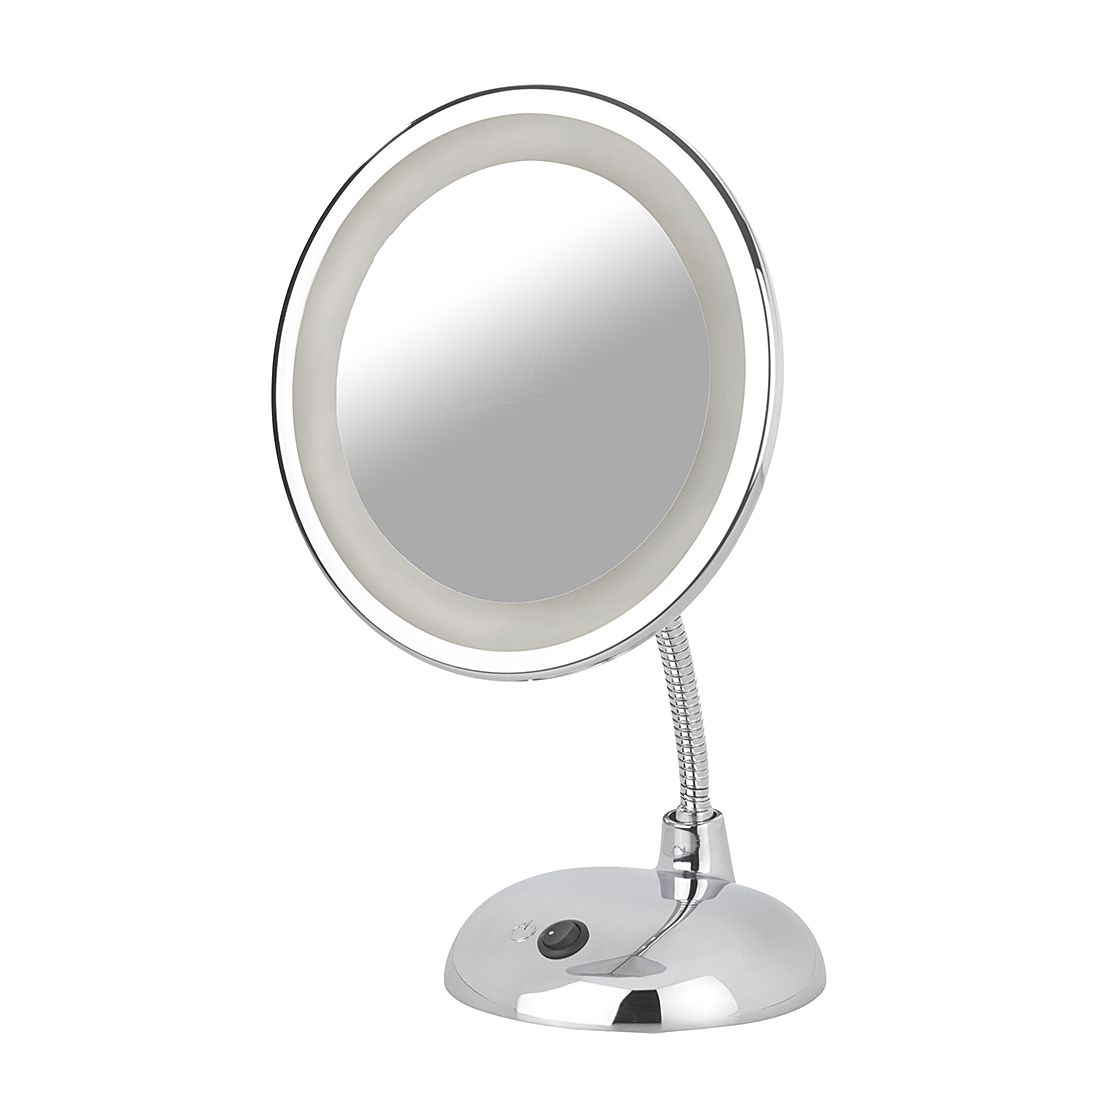 Miroir grossissant lumineux led style grossissement x 3 for Miroir grossissant 50